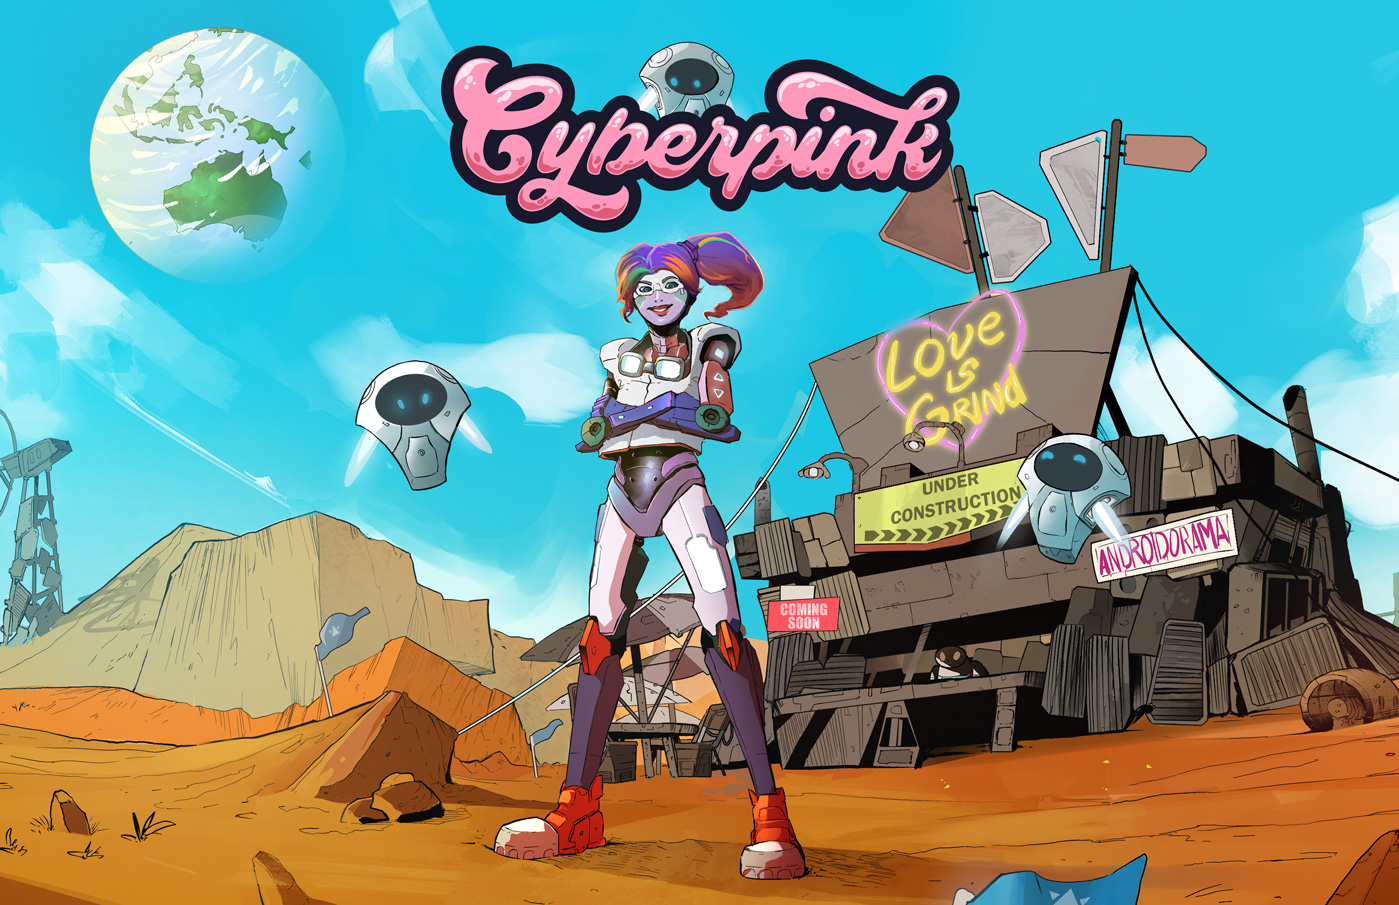 Marky, robot girl from Cyberpink